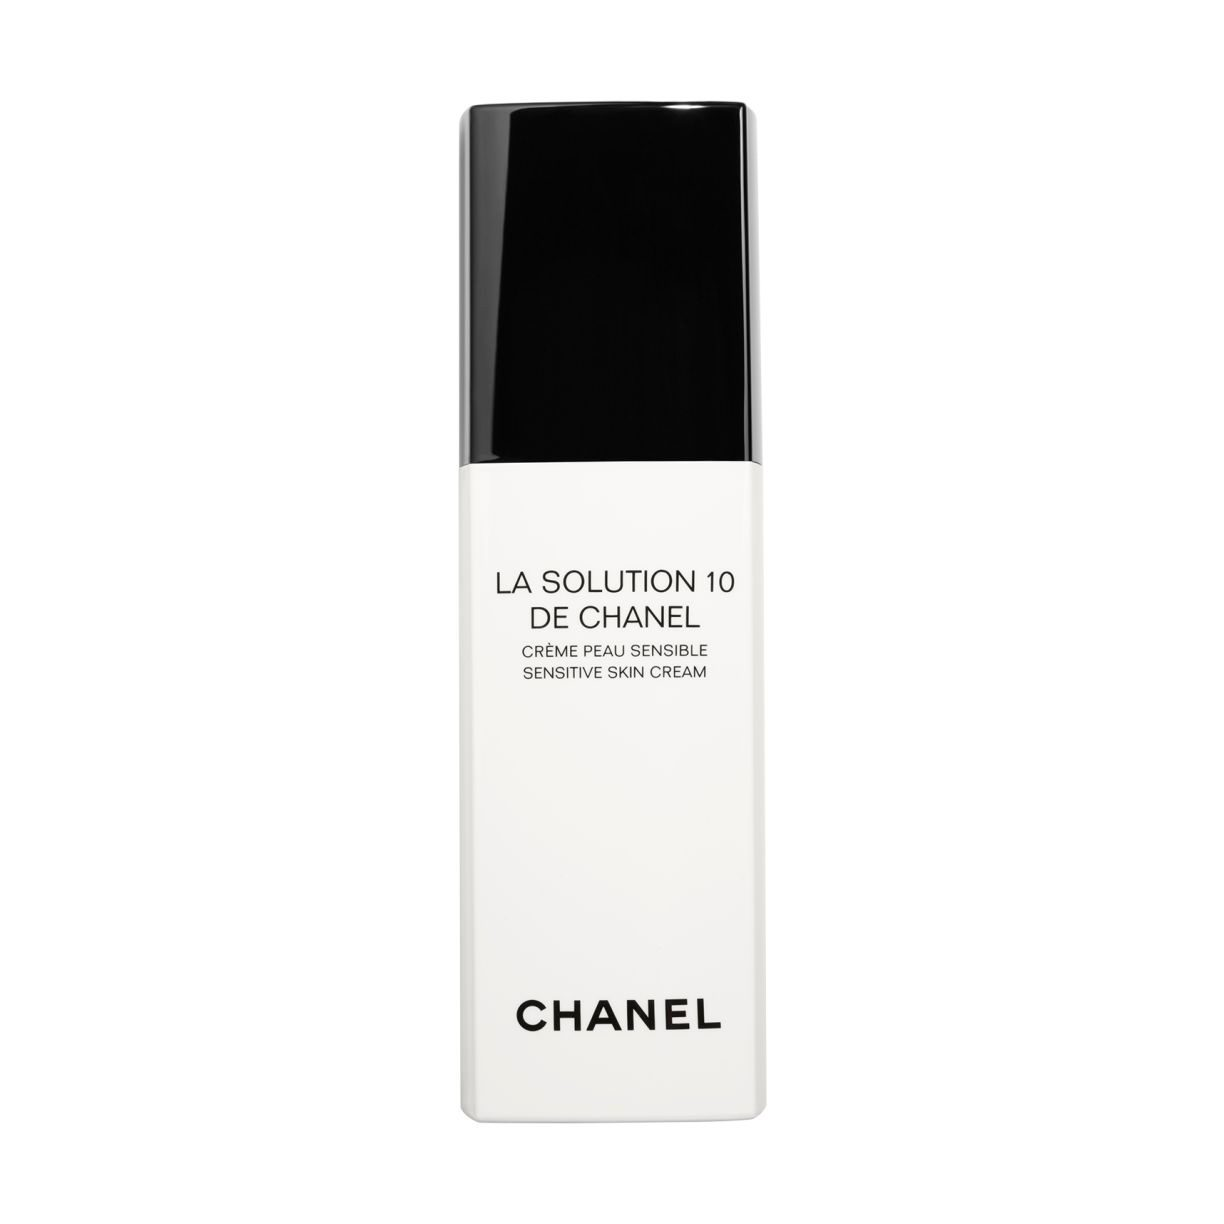 LA SOLUTION 10 DE CHANEL CREMA PIEL SENSIBLE ENVASE DOSIFICADOR 30ML